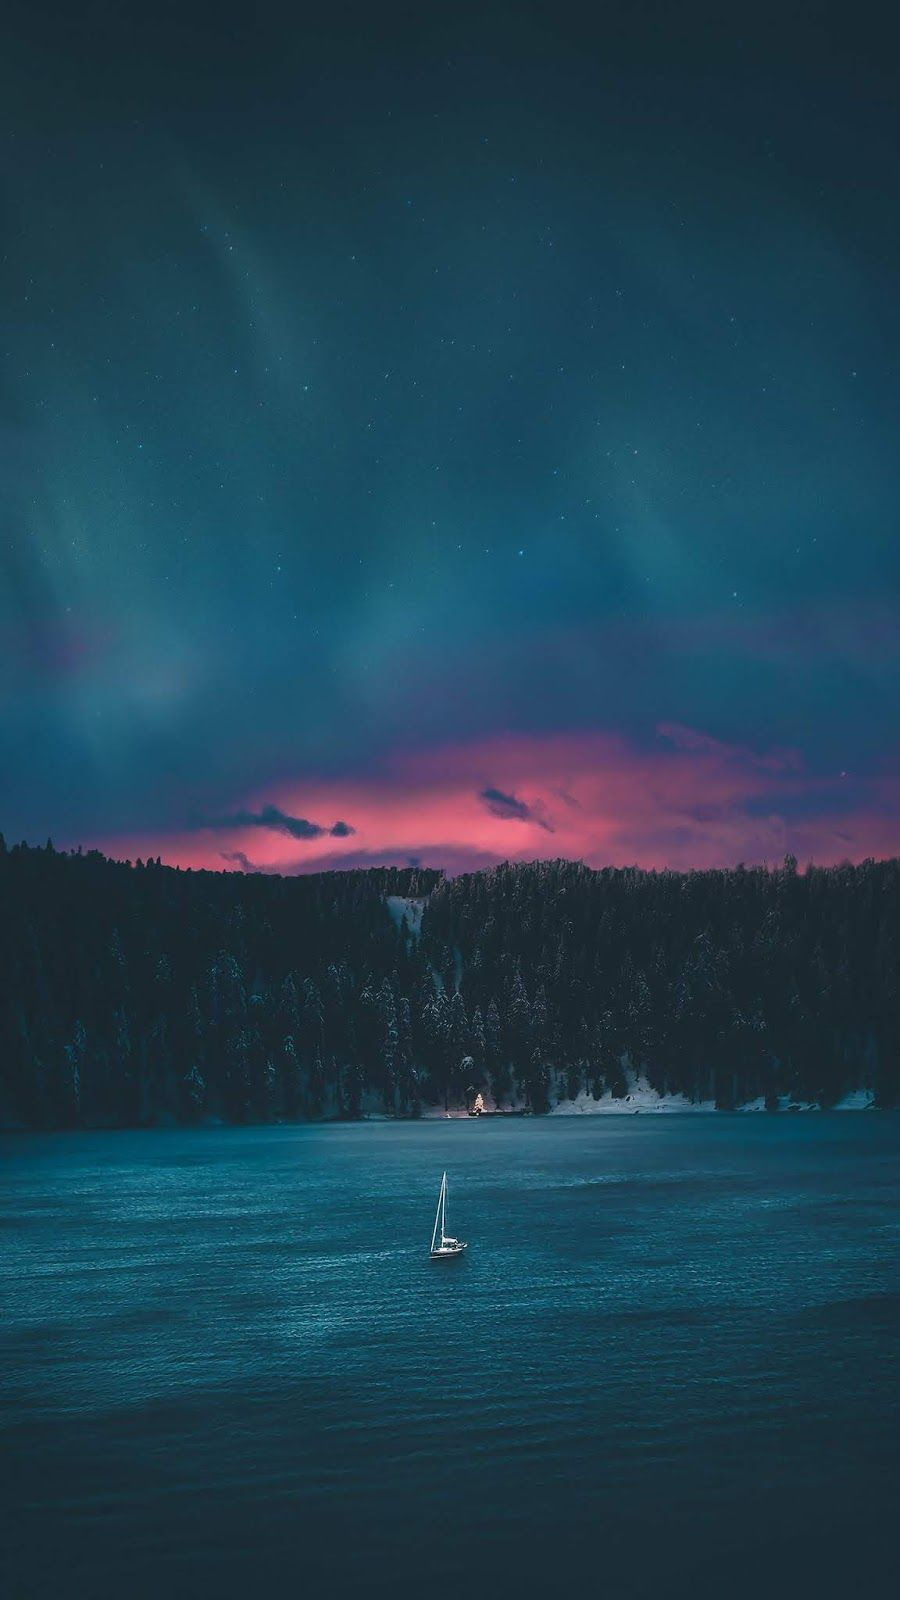 Calm Lake Wallpaper Iphone Android Background Followme Iphone Wallpaper Sky Best Nature Wallpapers Live Wallpaper Iphone